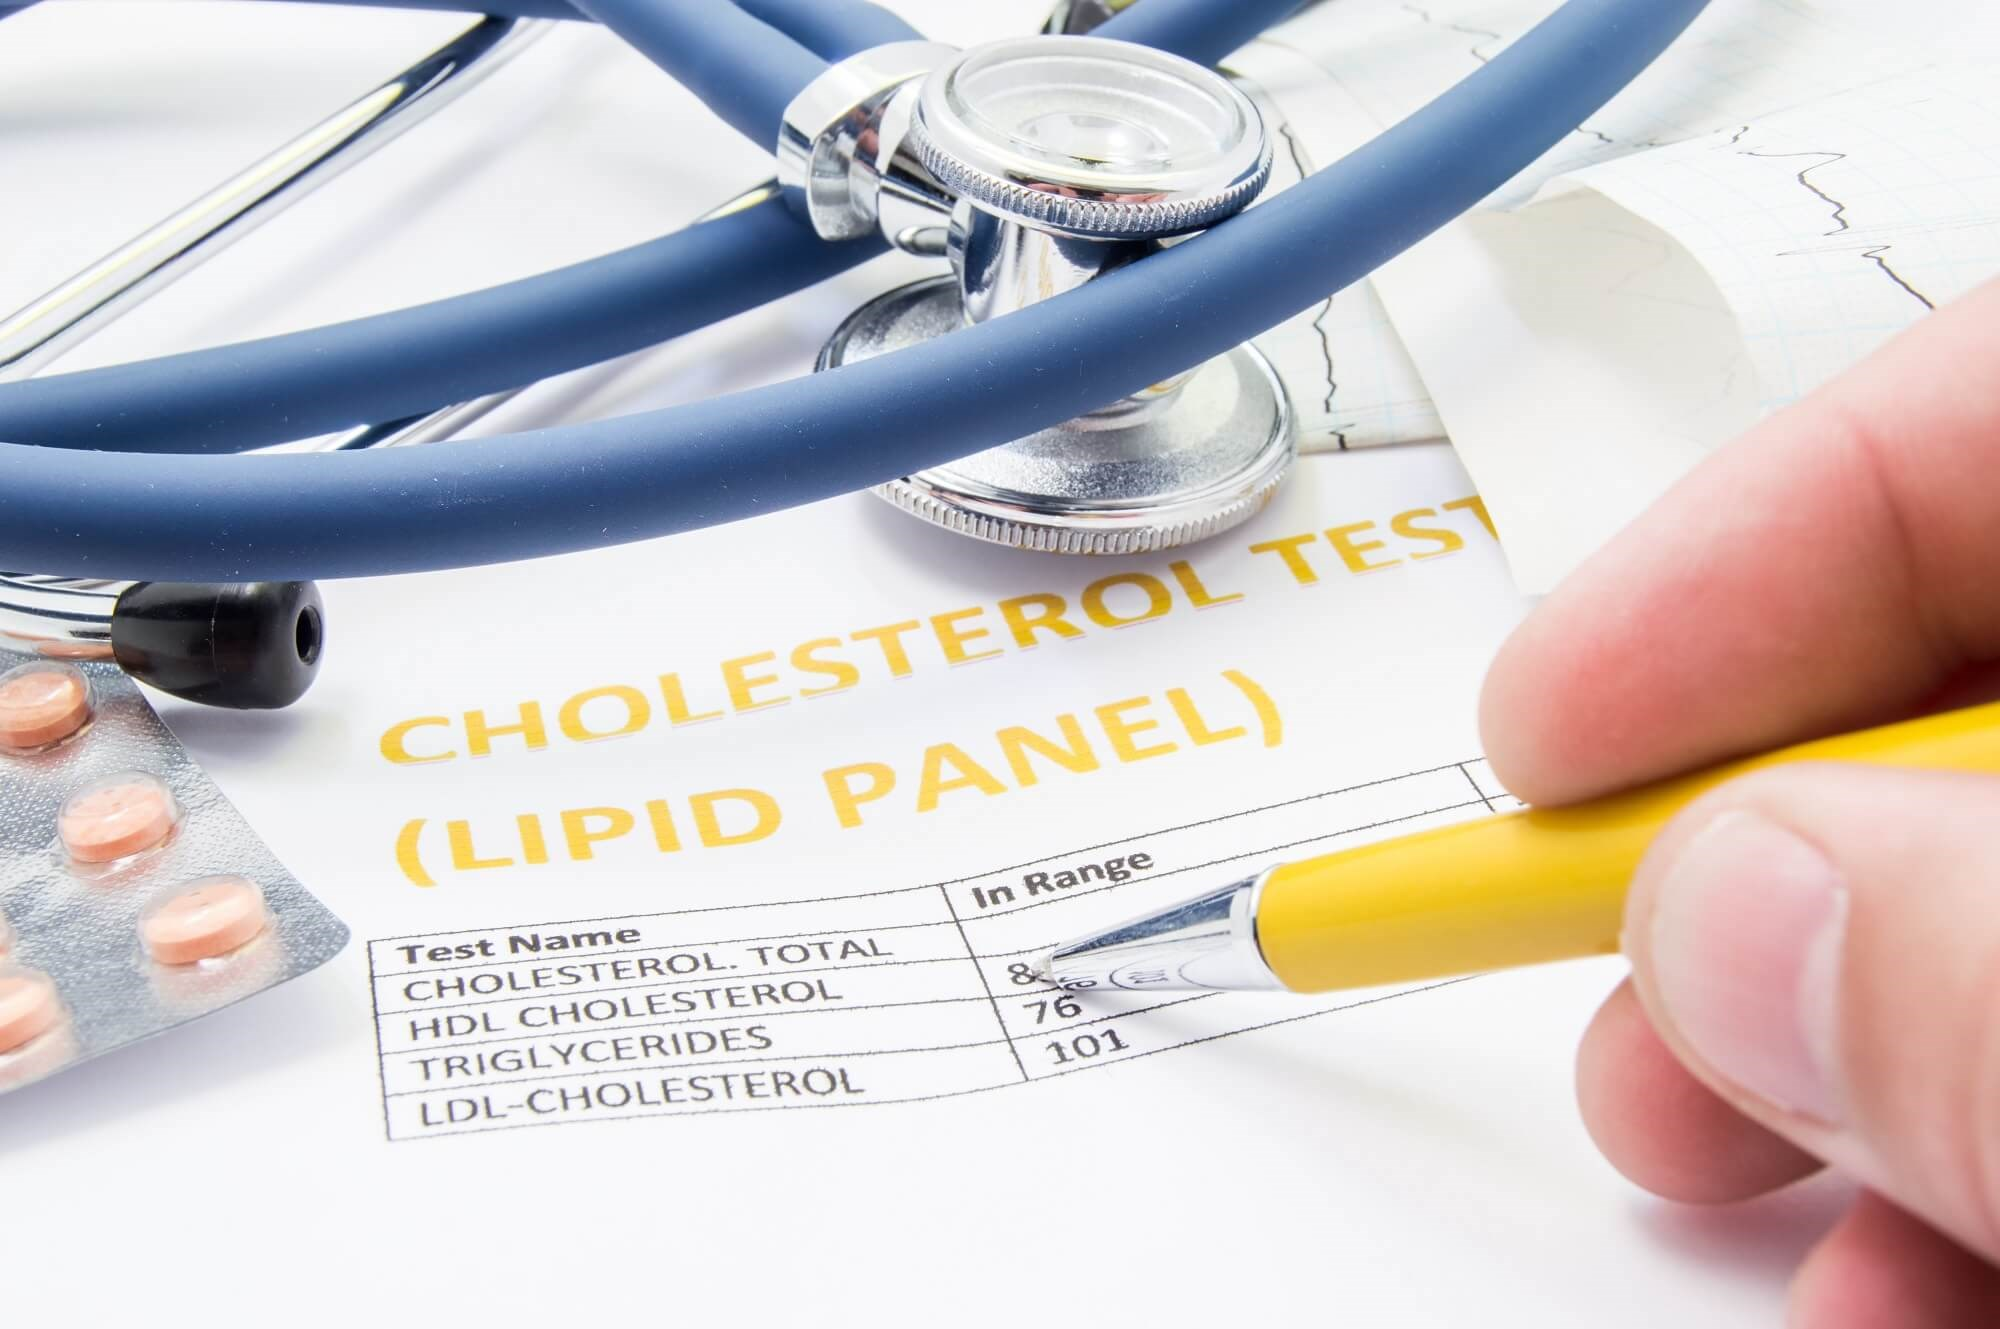 Adherence and Intensity of Lipid-Lowering Therapy Influence CV Risk